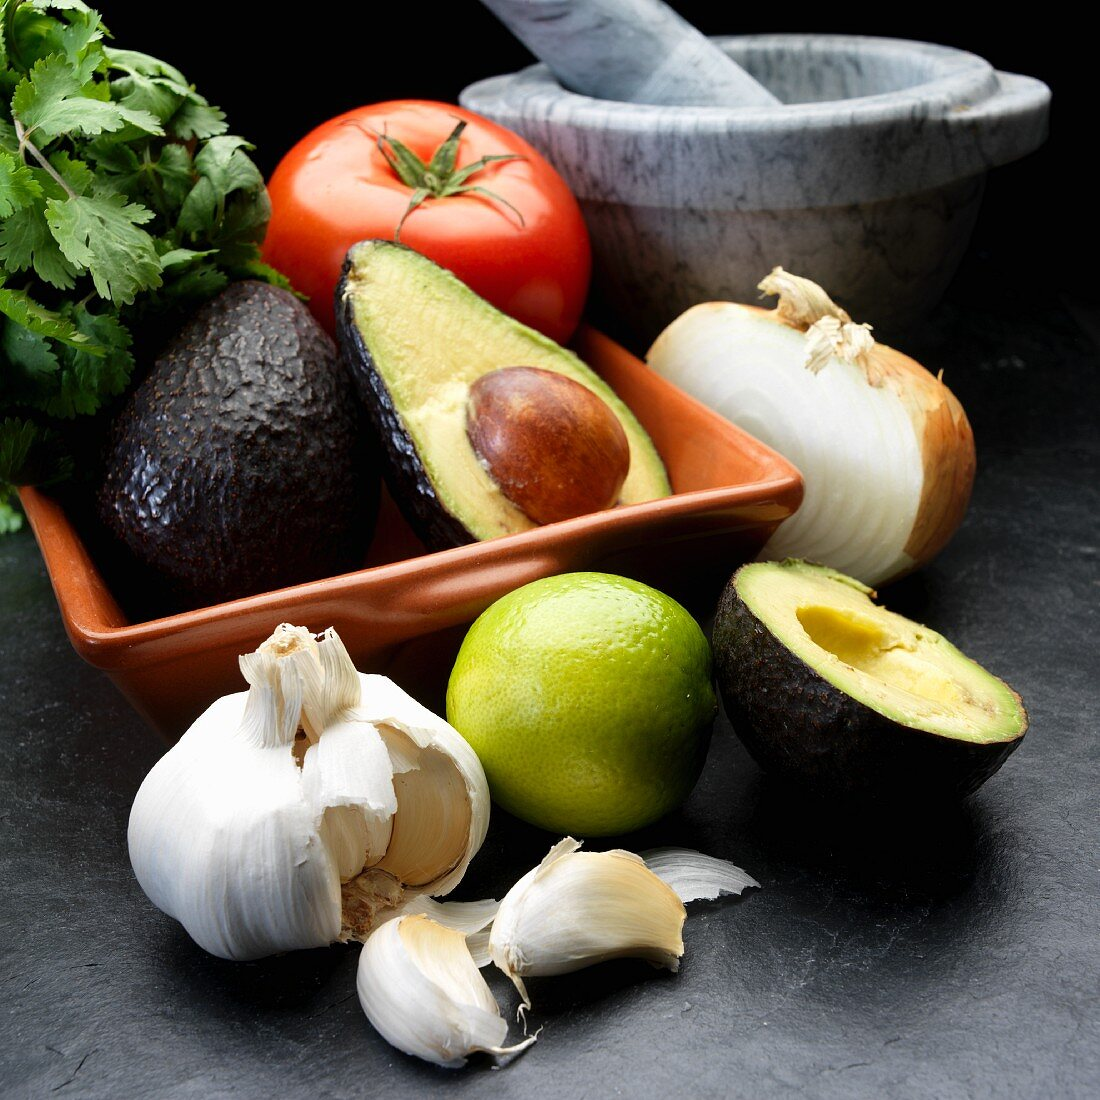 Ingredients for guacamole: avocado, onion, tomato, garlic and coriander